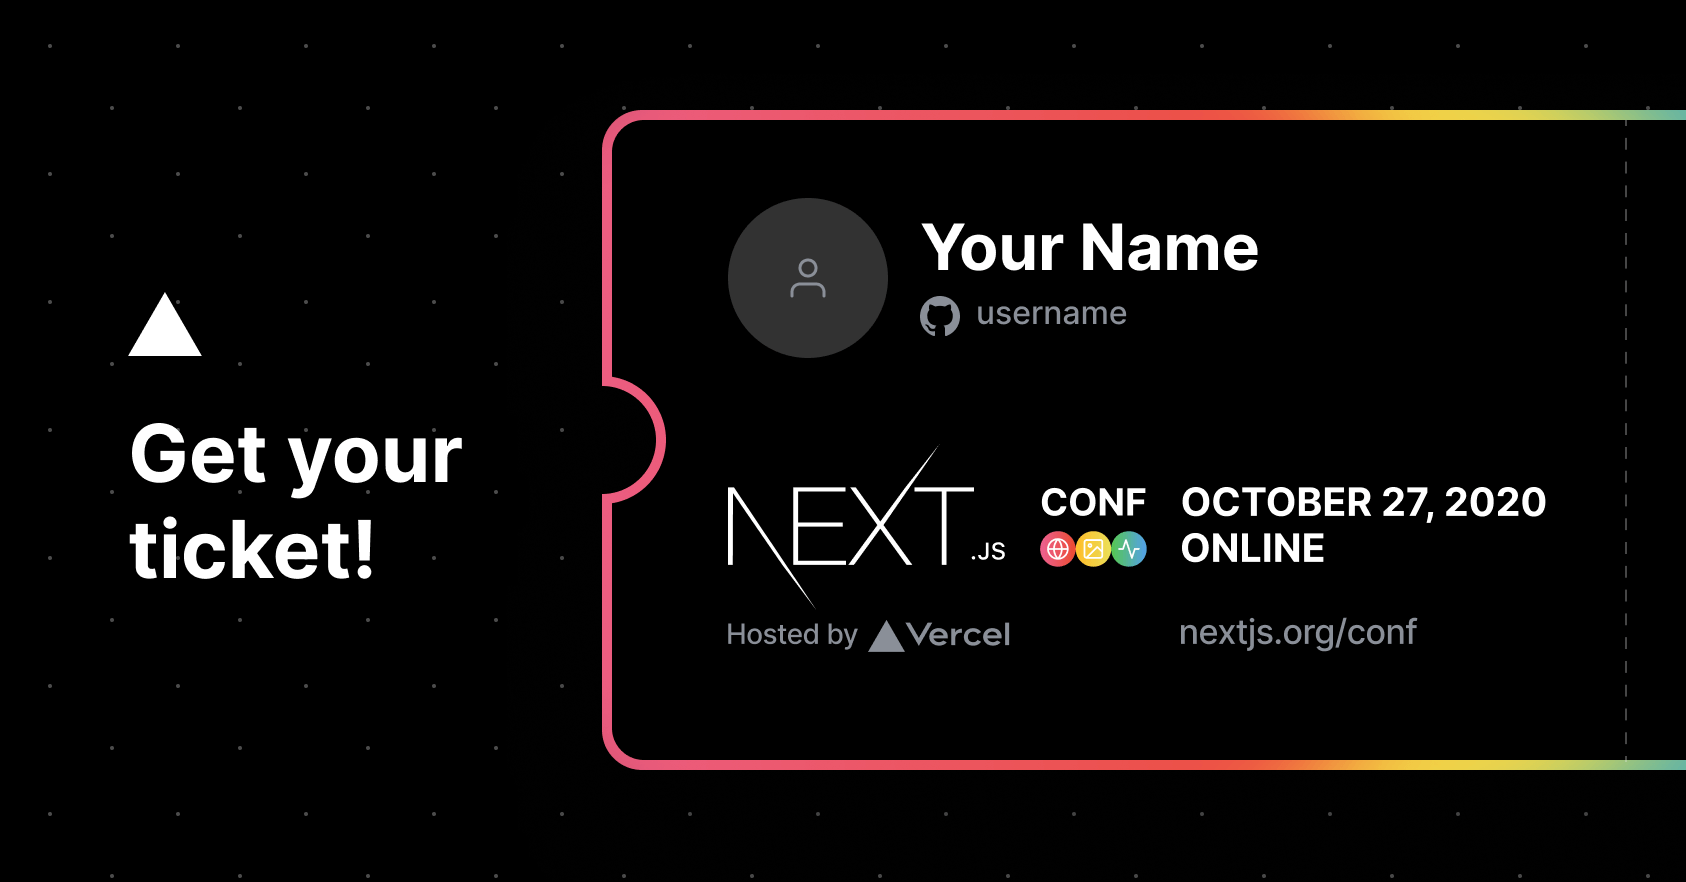 Next.js conf is coming